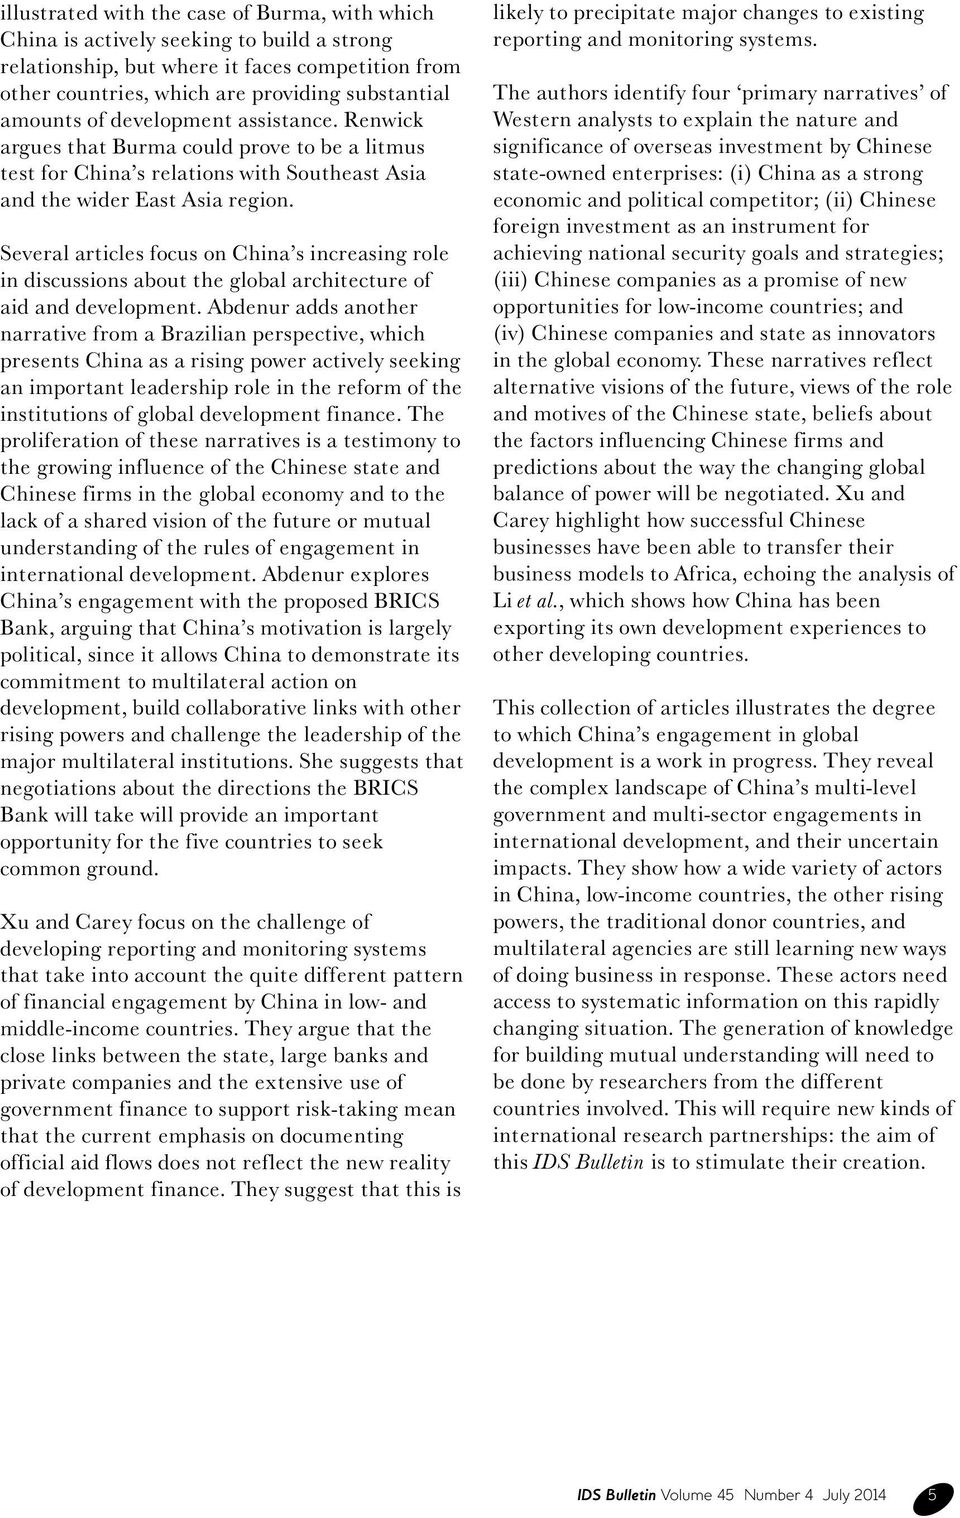 Several articles focus on China s increasing role in discussions about the global architecture of aid and development.